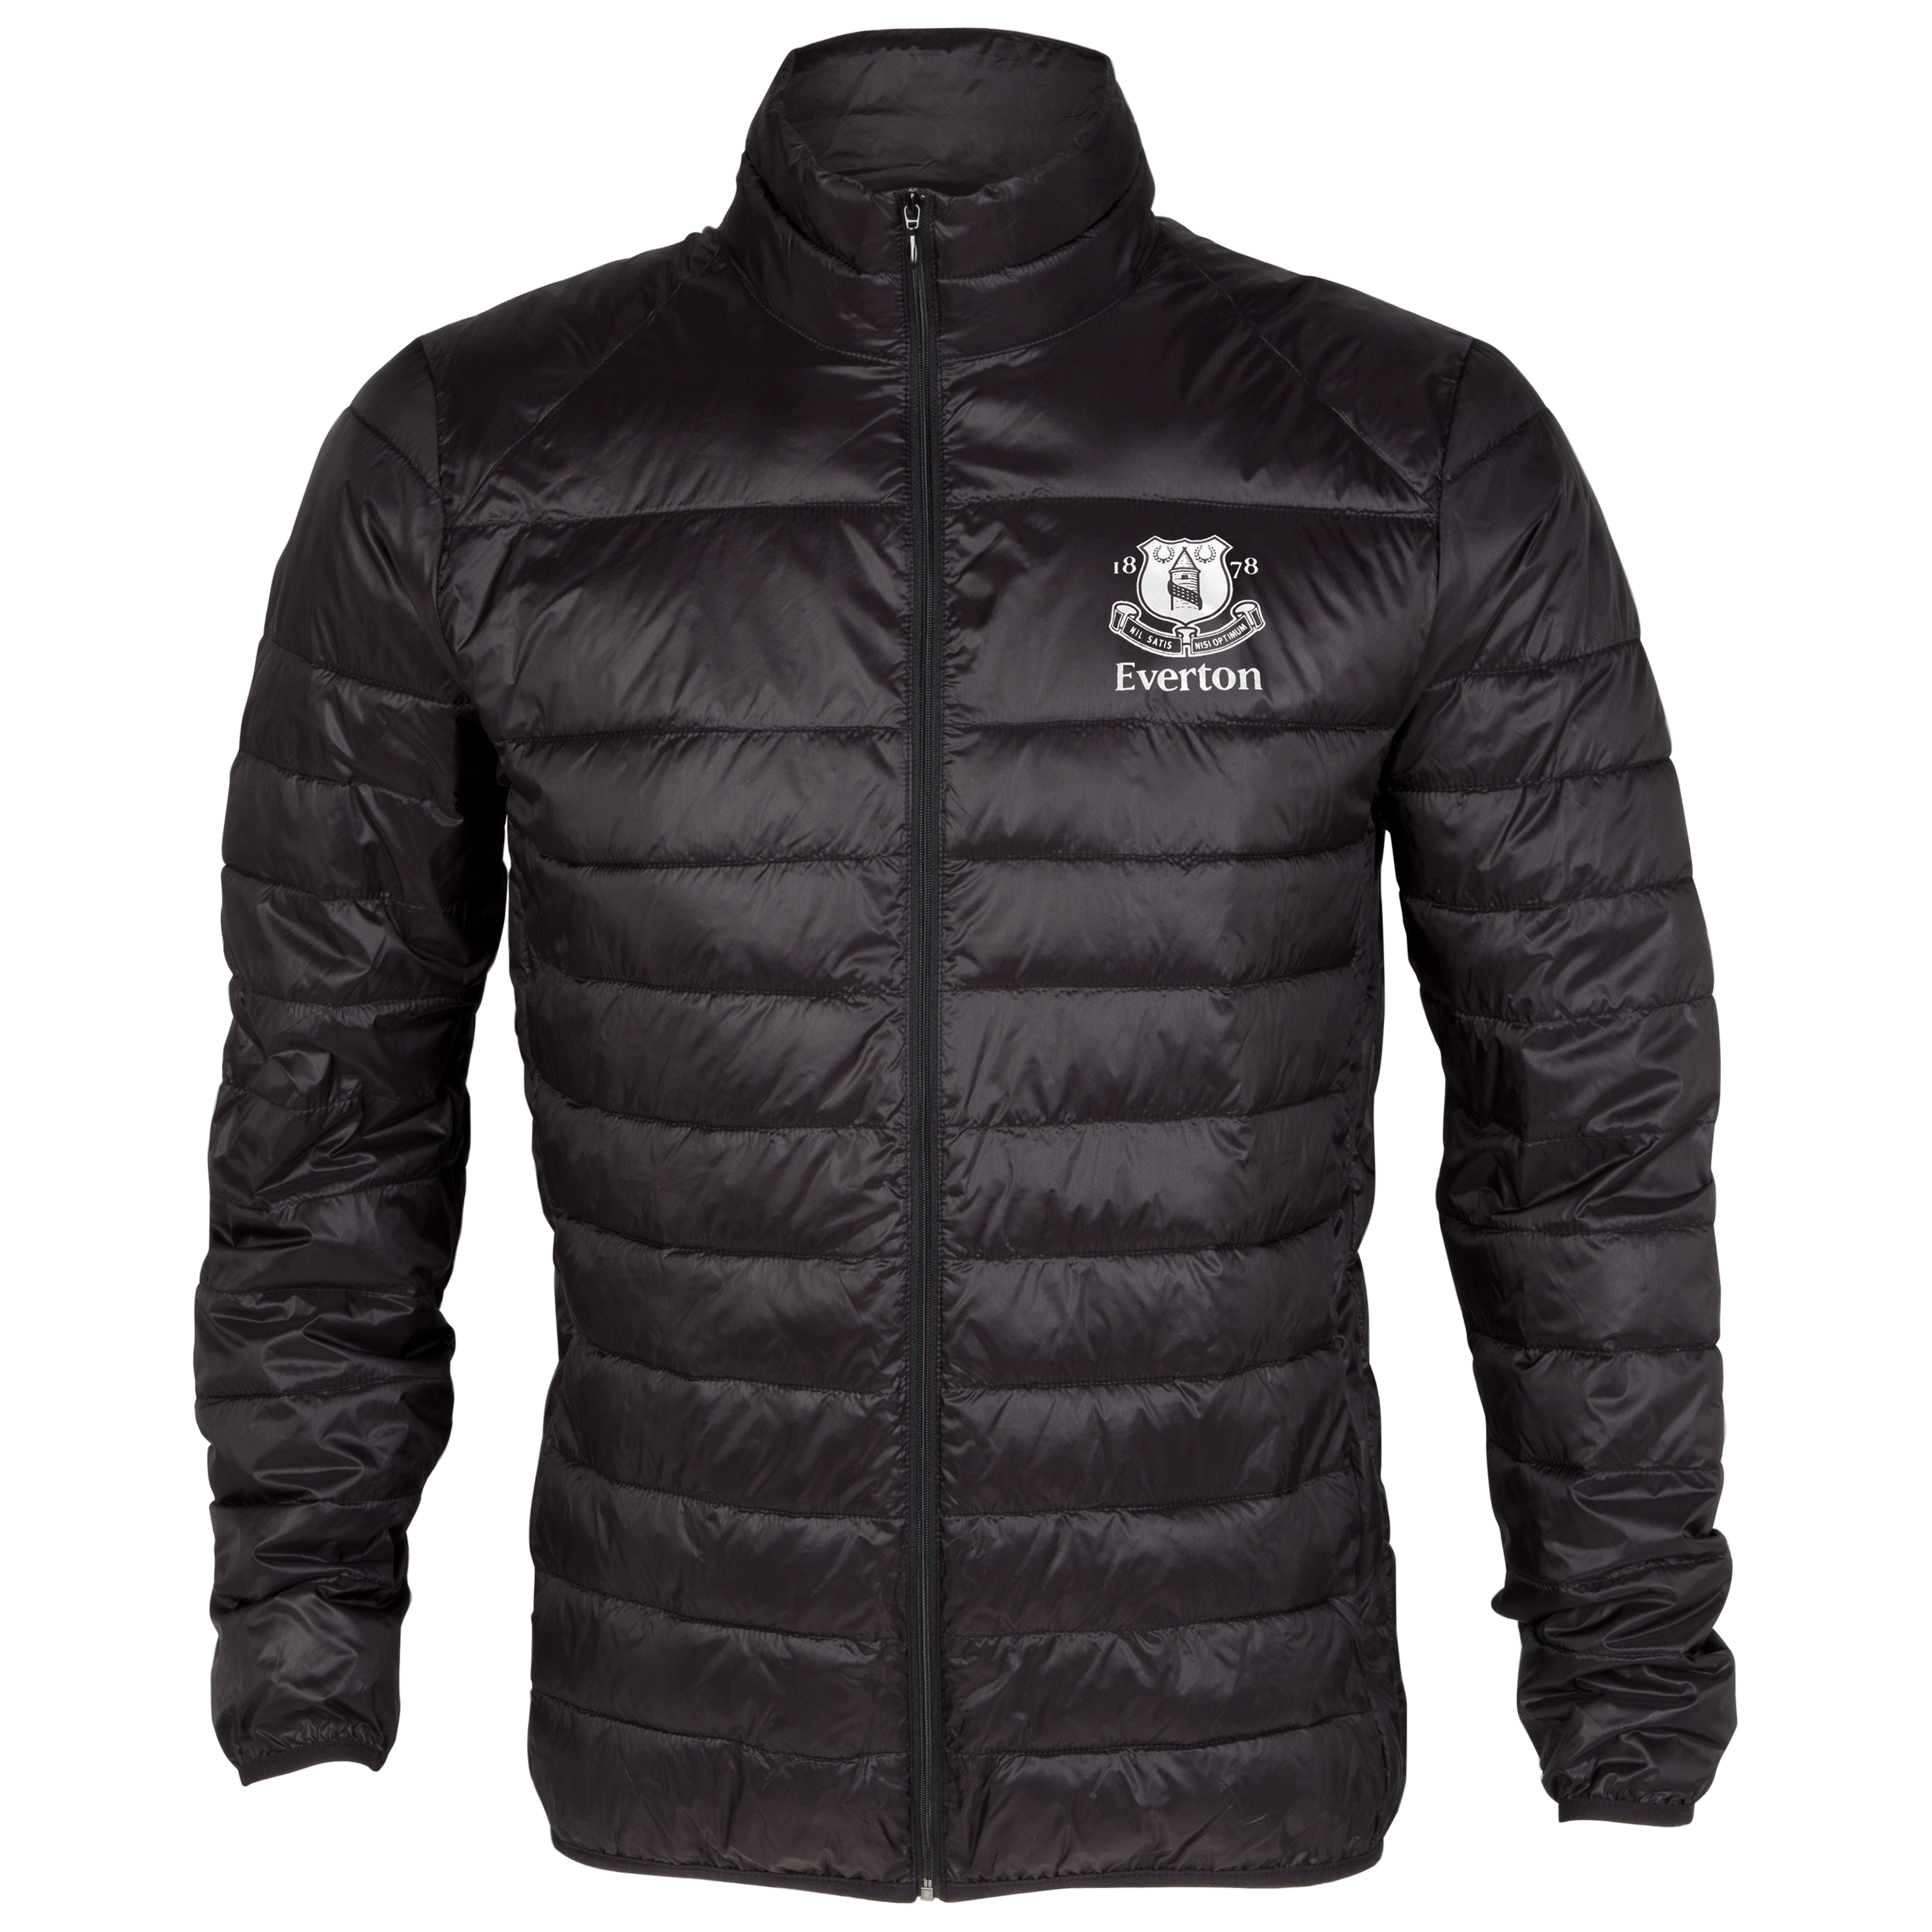 Everton Performance Chamonix Jacket - Black - Older Boys